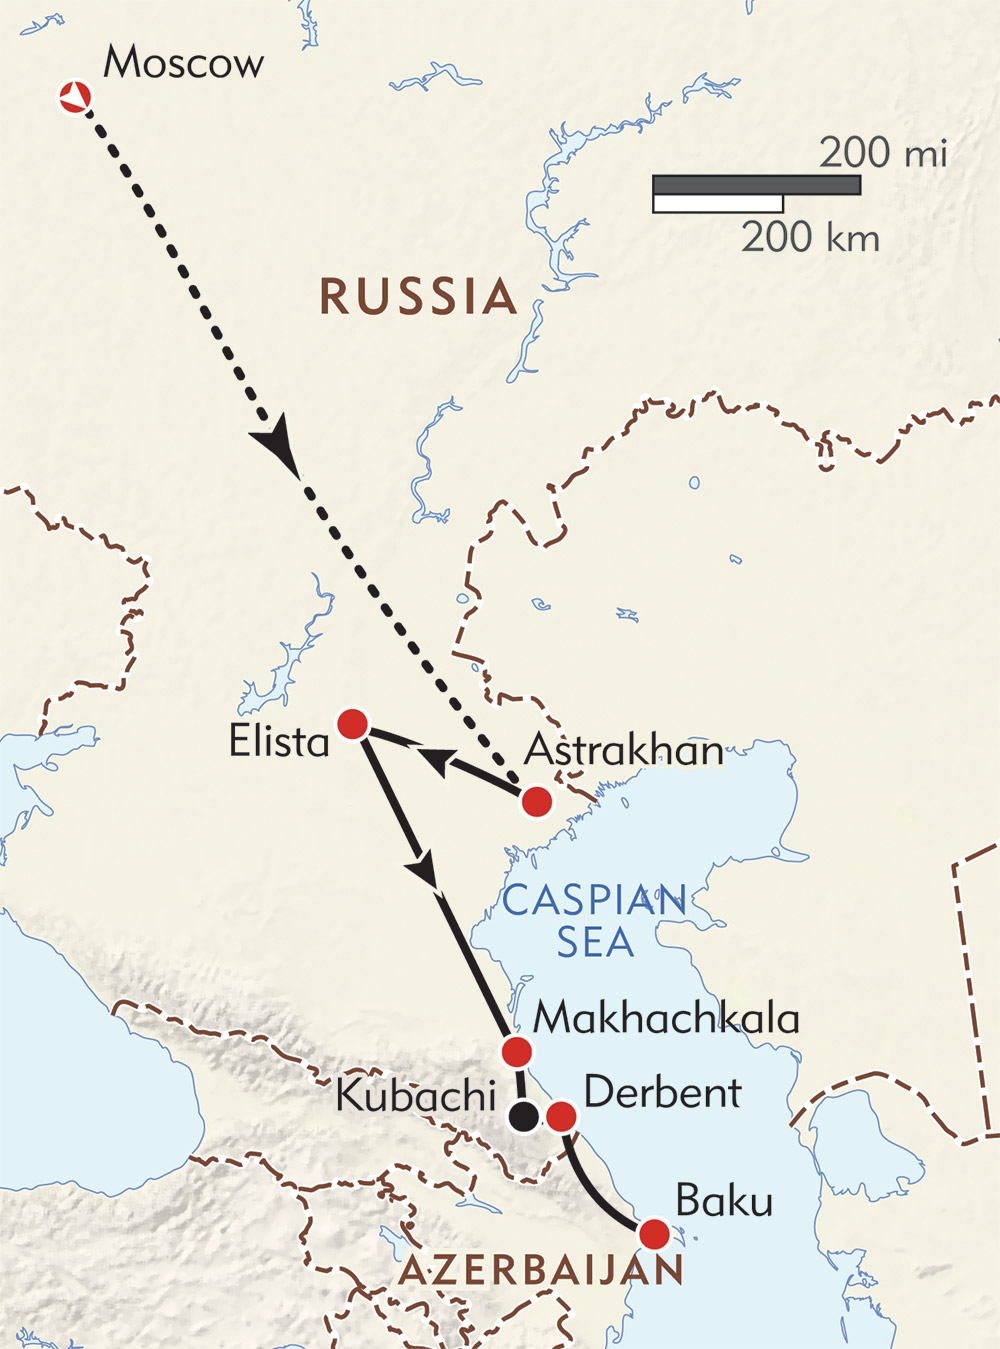 Caspian Explorer: Moscow to Azerbaijan route-map